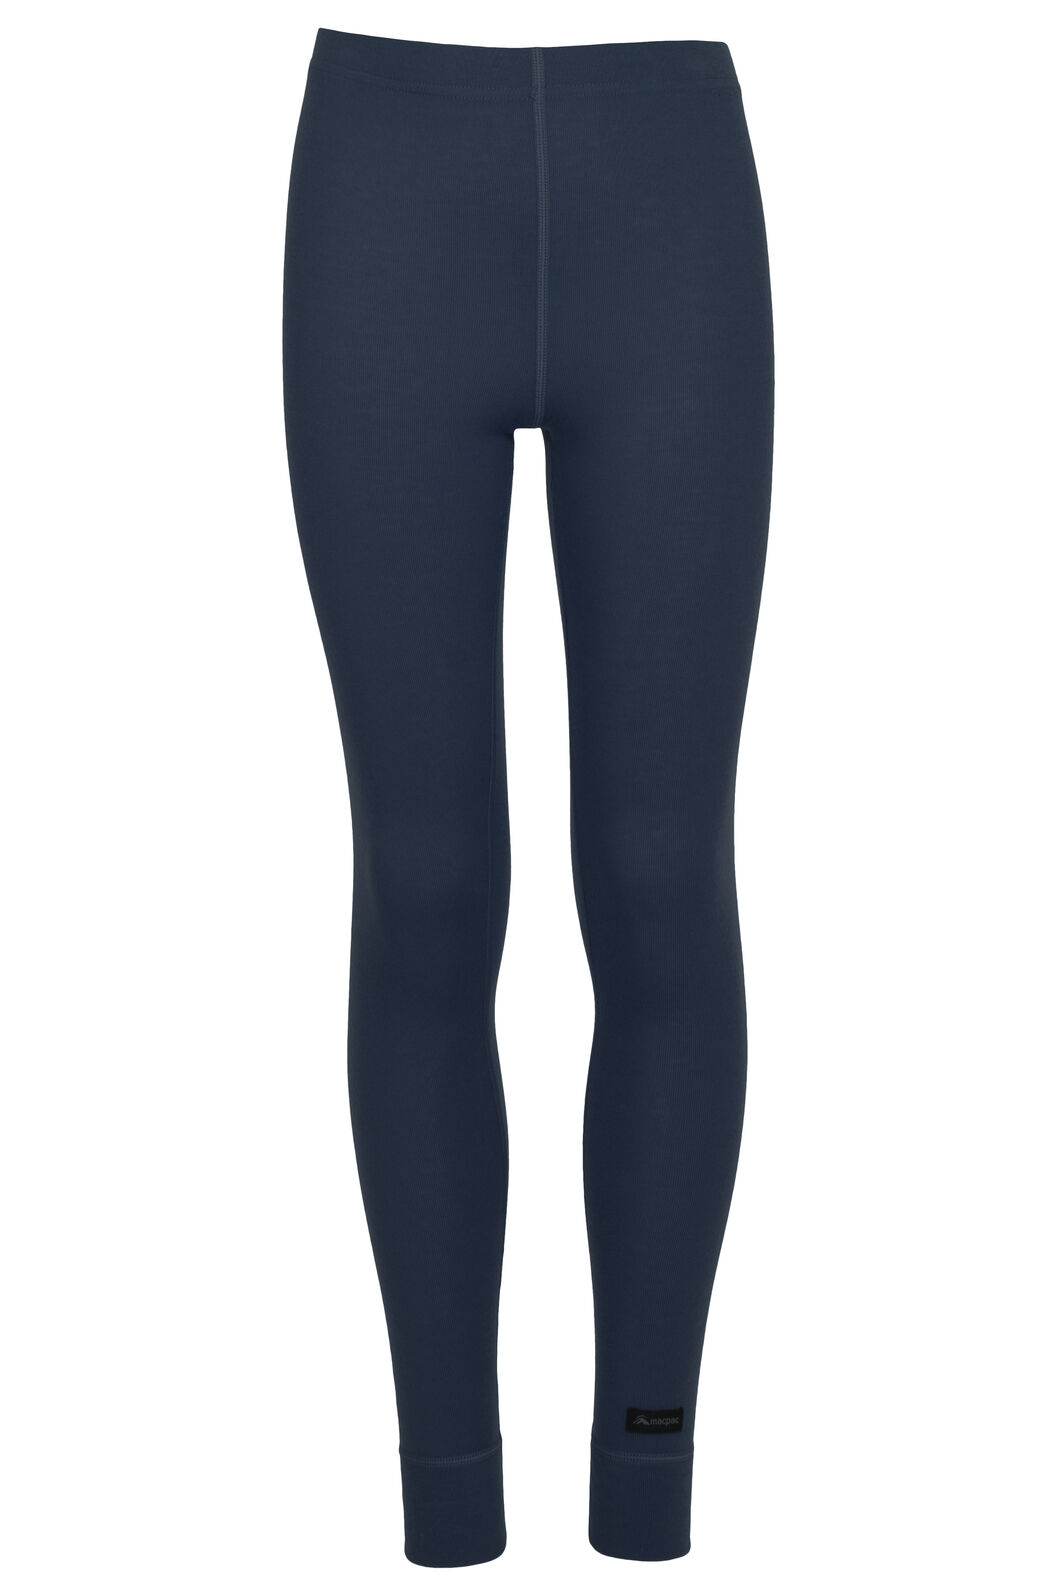 Macpac Geothermal Pants - Kids', Dress Blue, hi-res